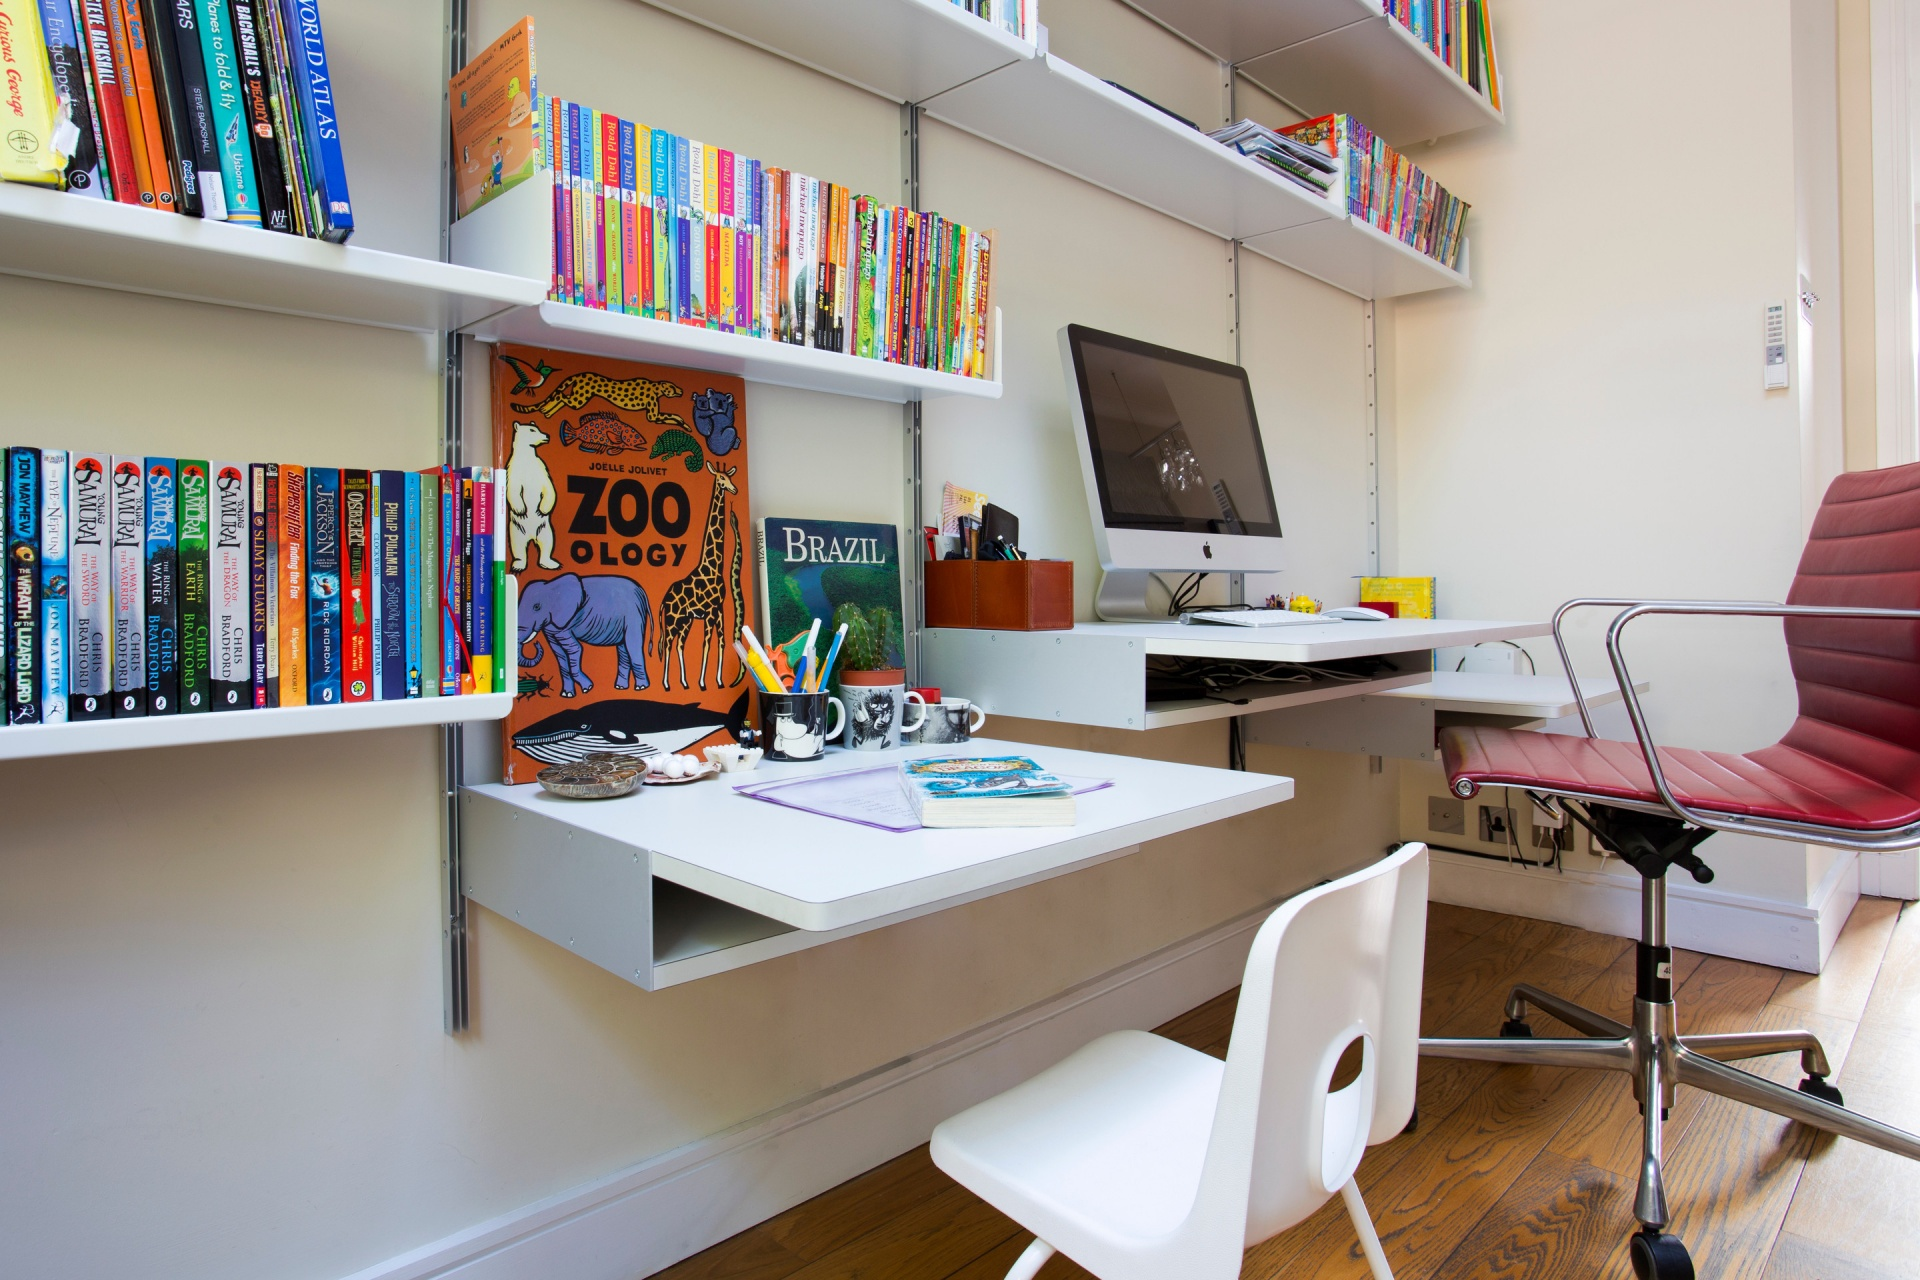 Desks at different heights for kids and grown-ups. A shelving system is for life